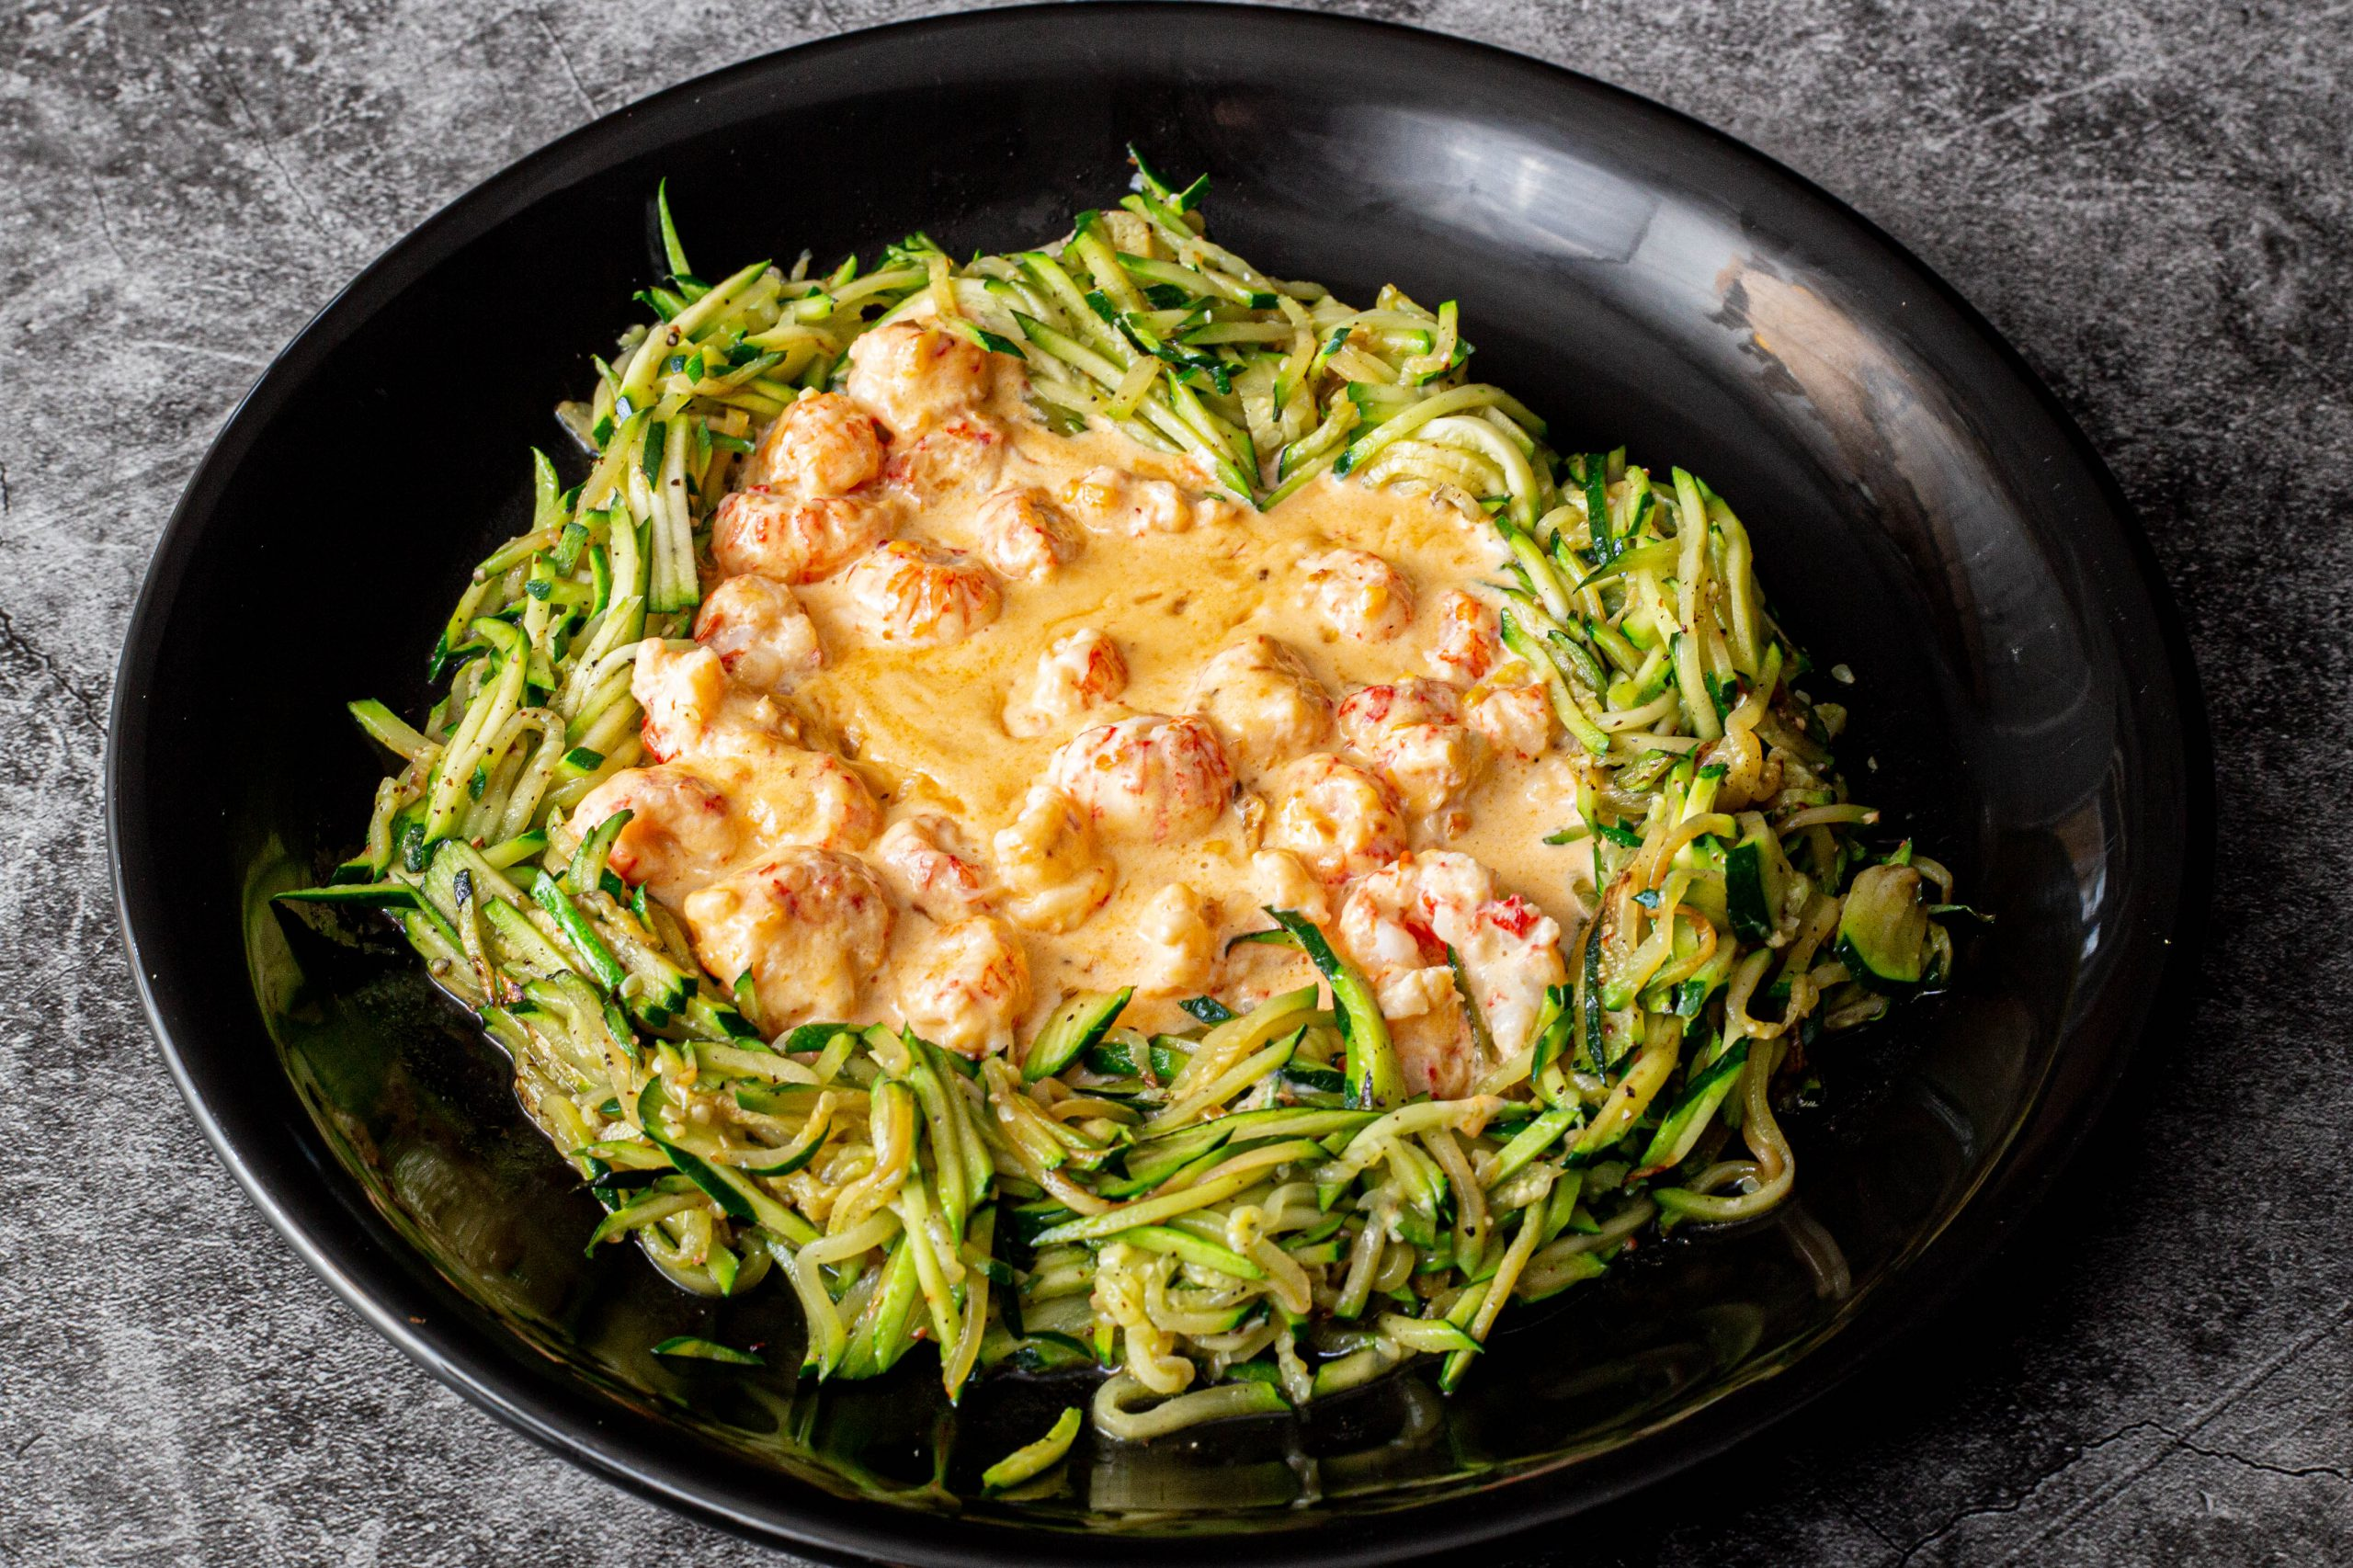 Shrimp in a spicy chili cream sauce on bed of zoodles, or zucchini noodles